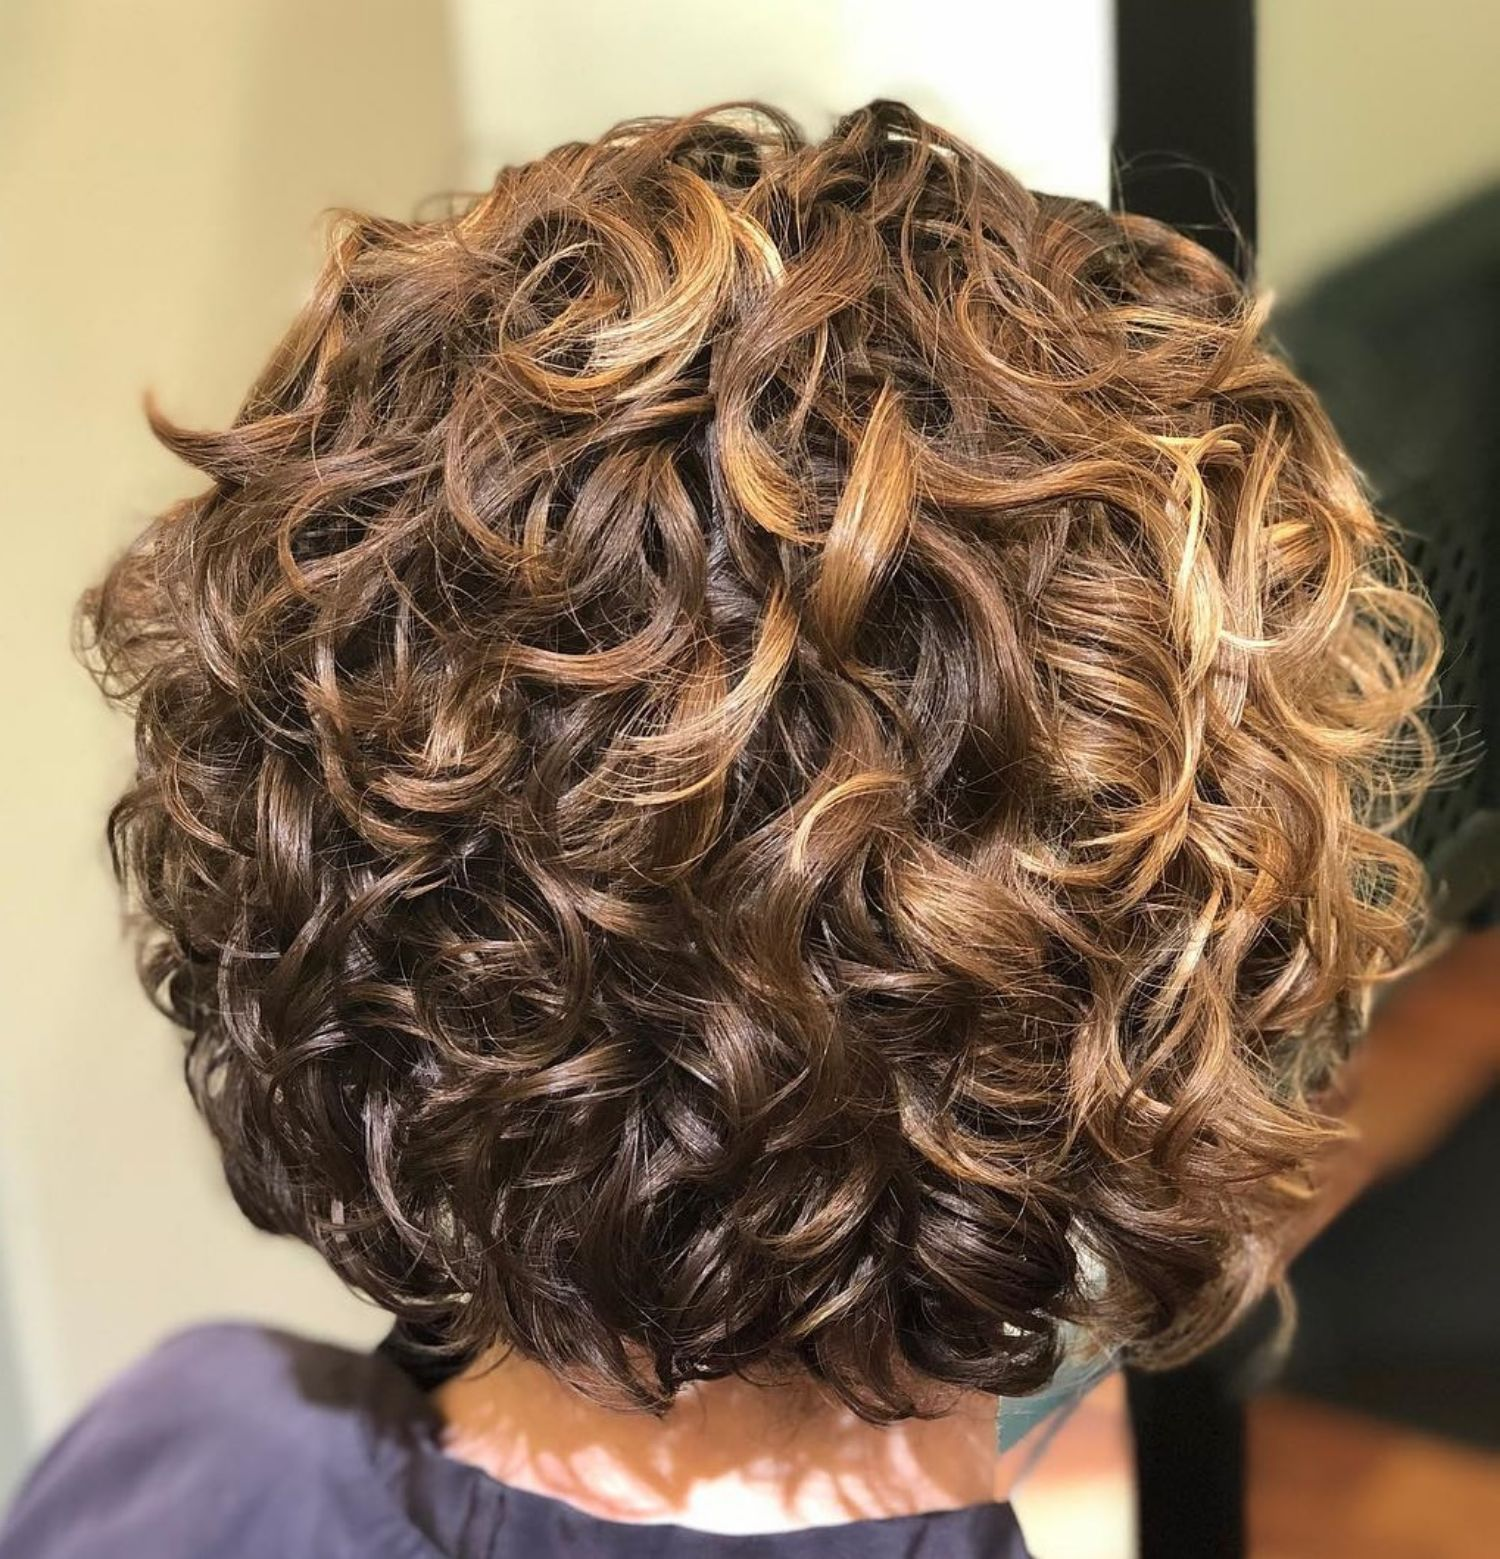 Short Curly Golden Bronde Hairstyle Short Natural Curly Hair Hair Styles Curly Bob Hairstyles